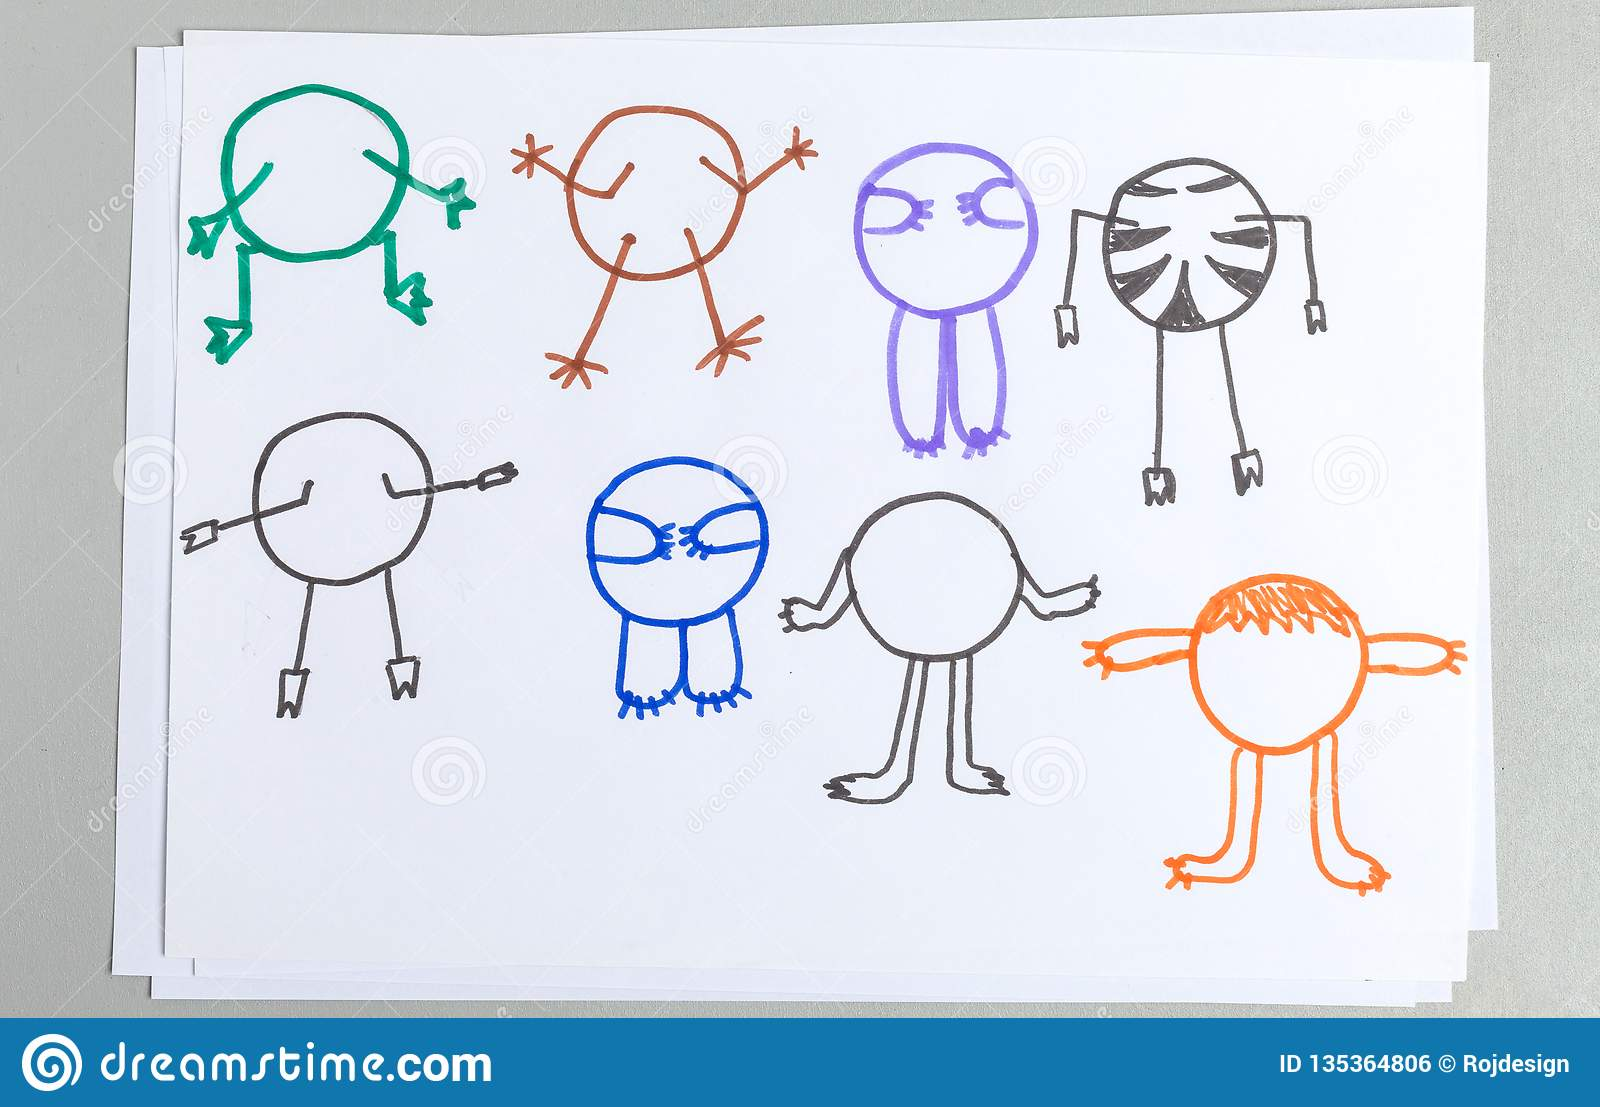 Kid drawings set of different animal body with arms and legs